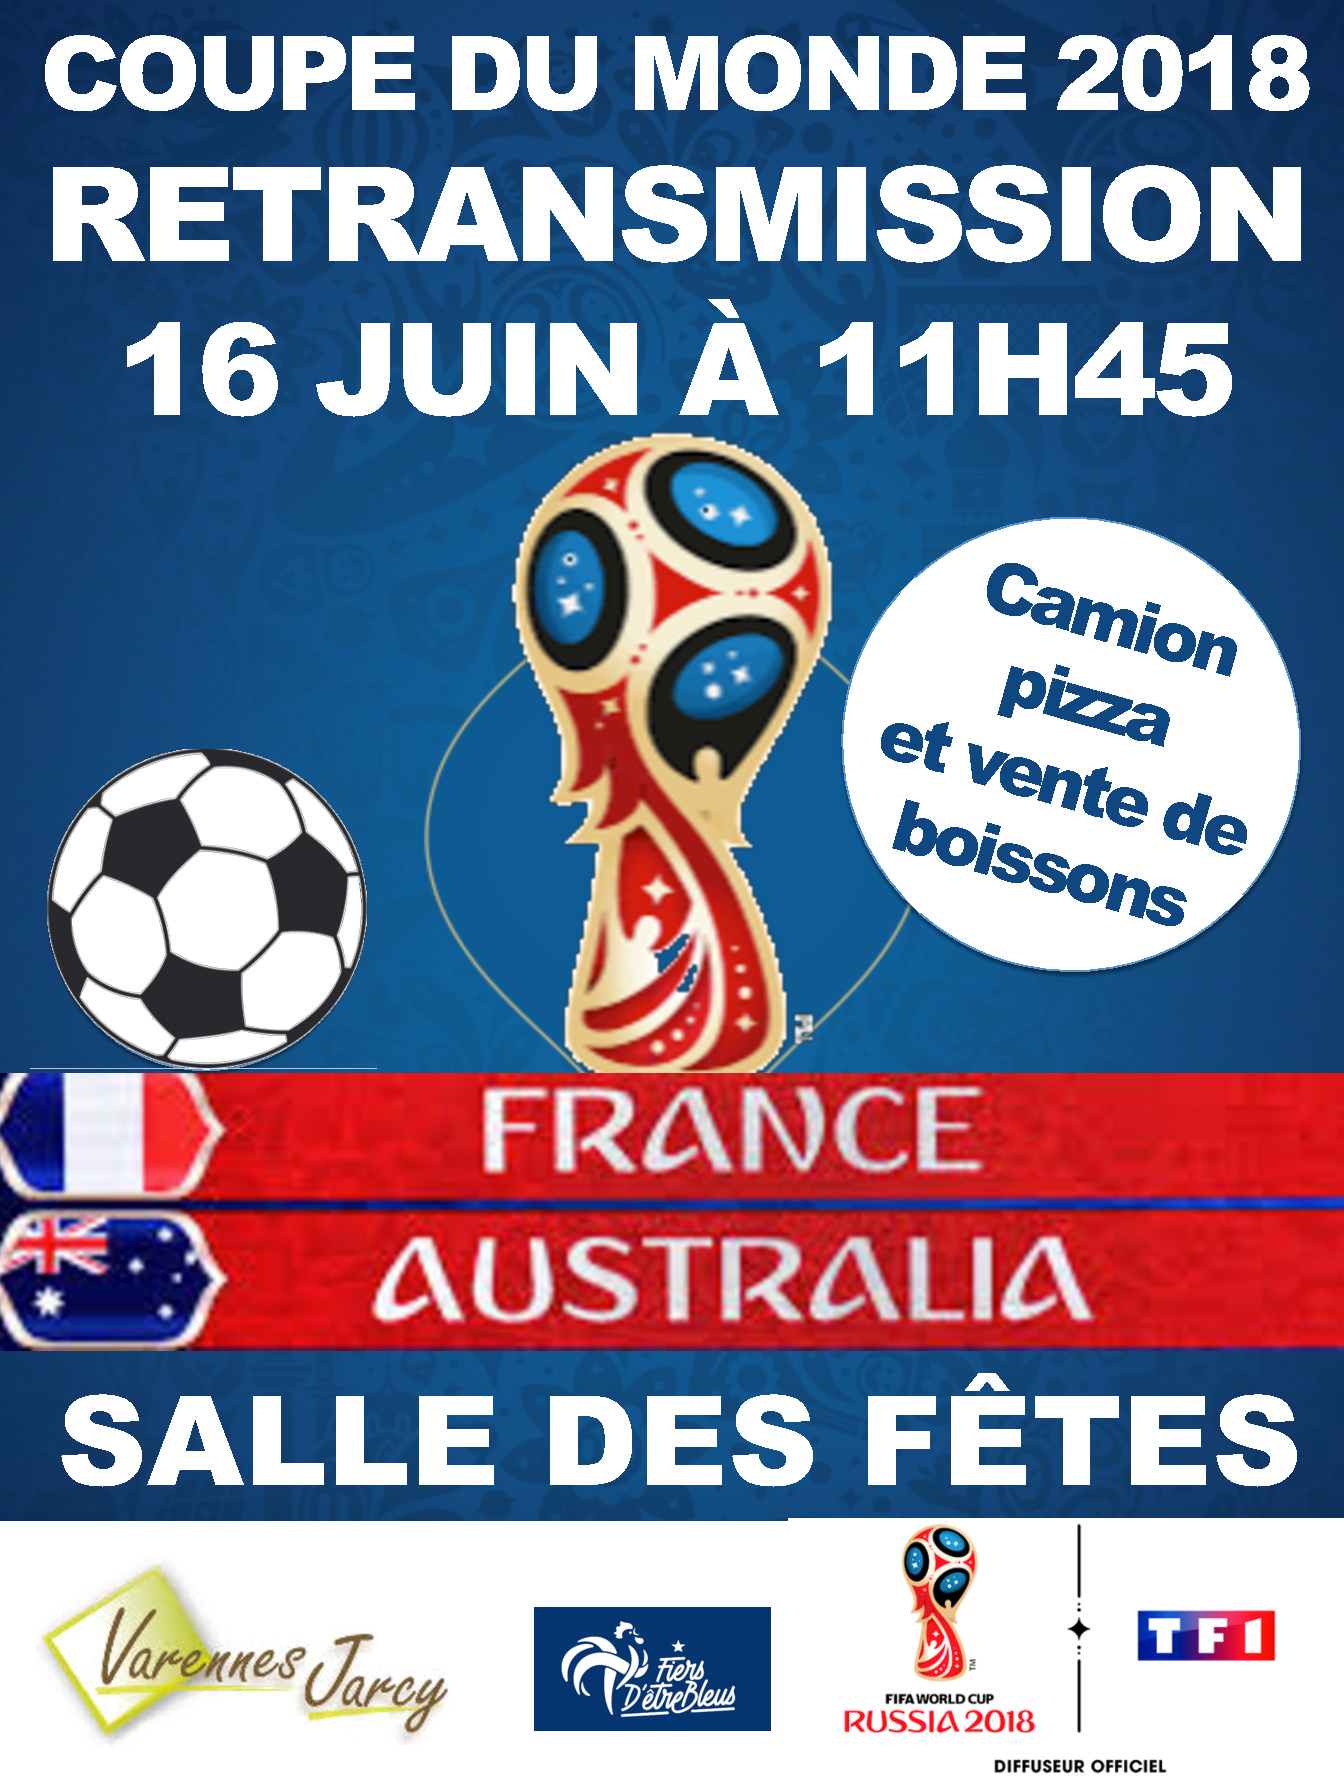 thumbnail of affiche retransmission coupe du monde